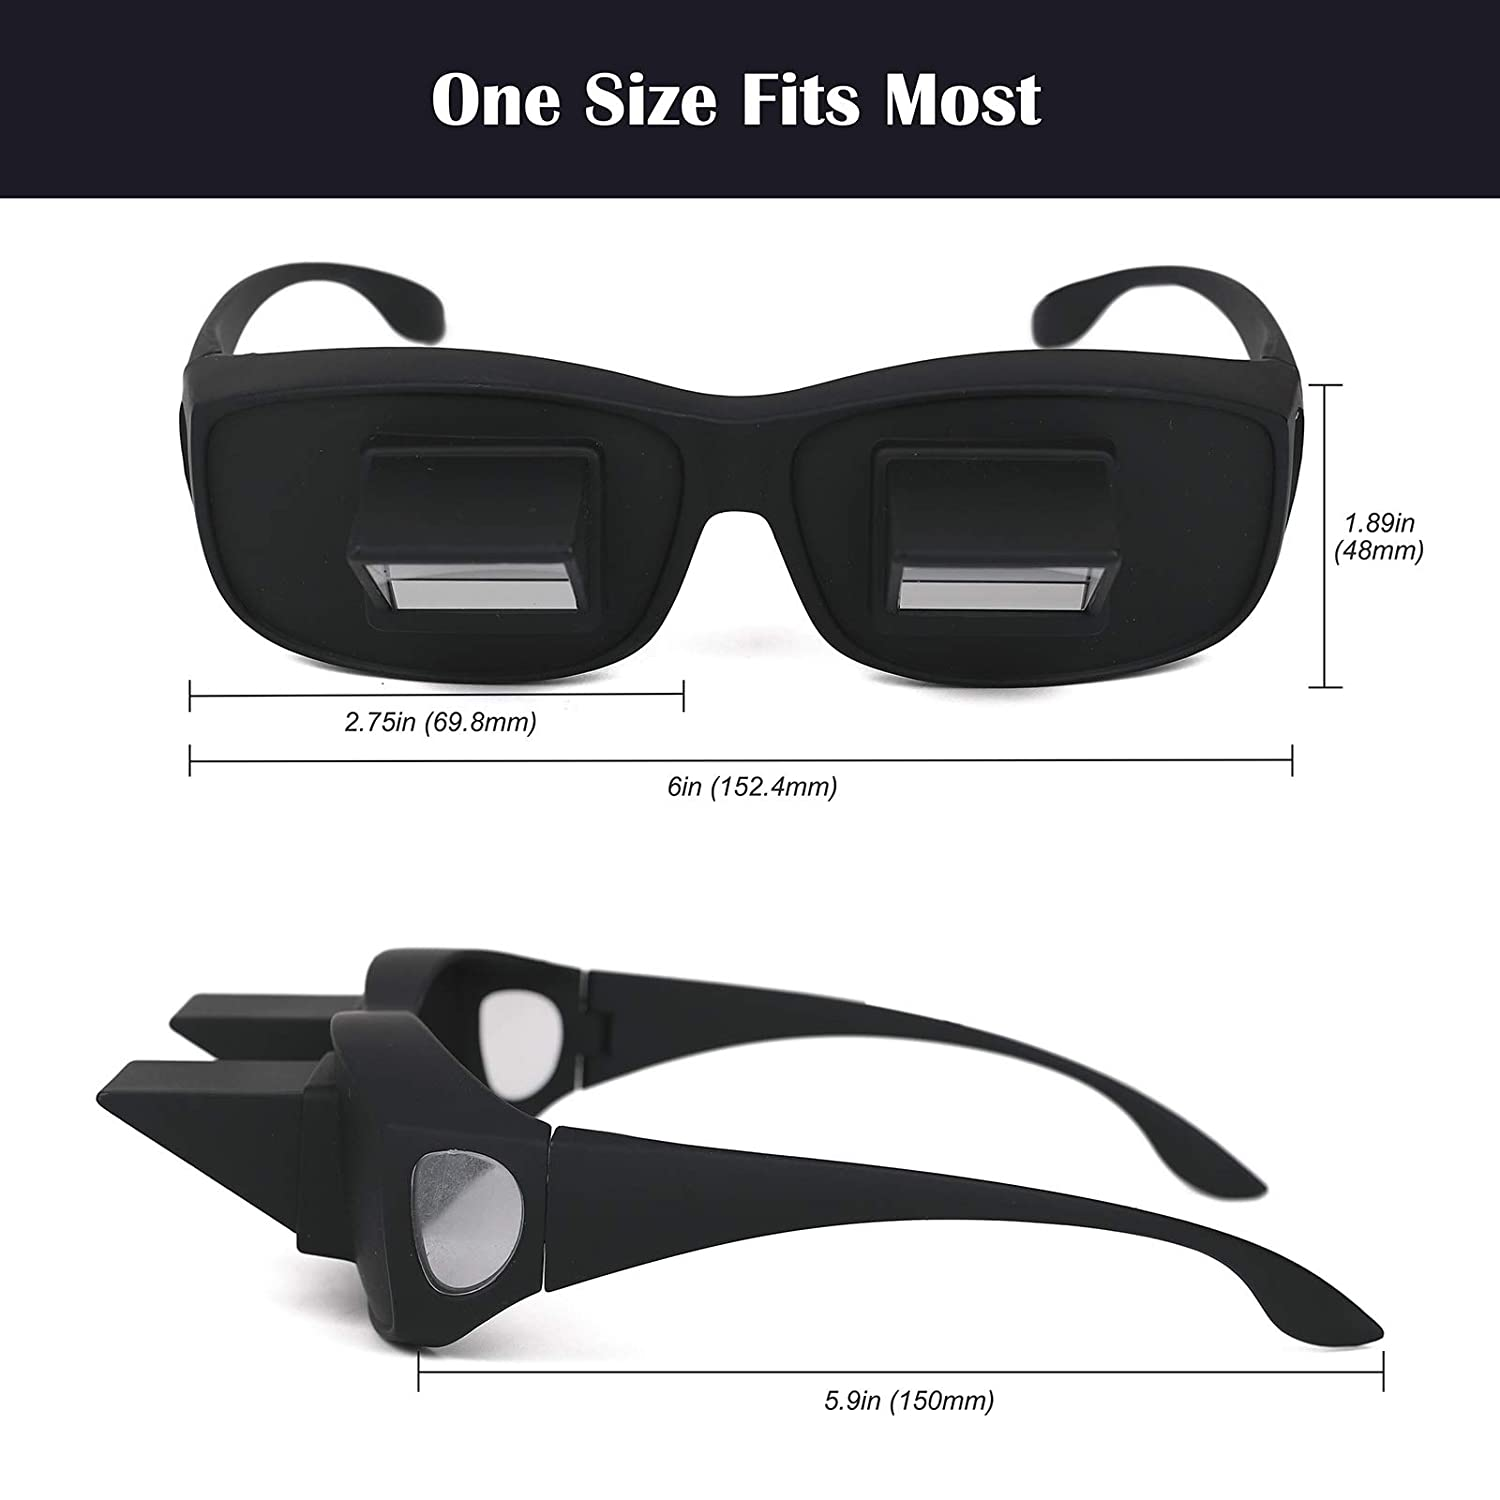 d67cf72f029 Amazon.com  Flammi Bed Prism Glasses Horizontal Glasses Lazy Spectacles Lie  Down for Reading Watching TV  Health   Personal Care